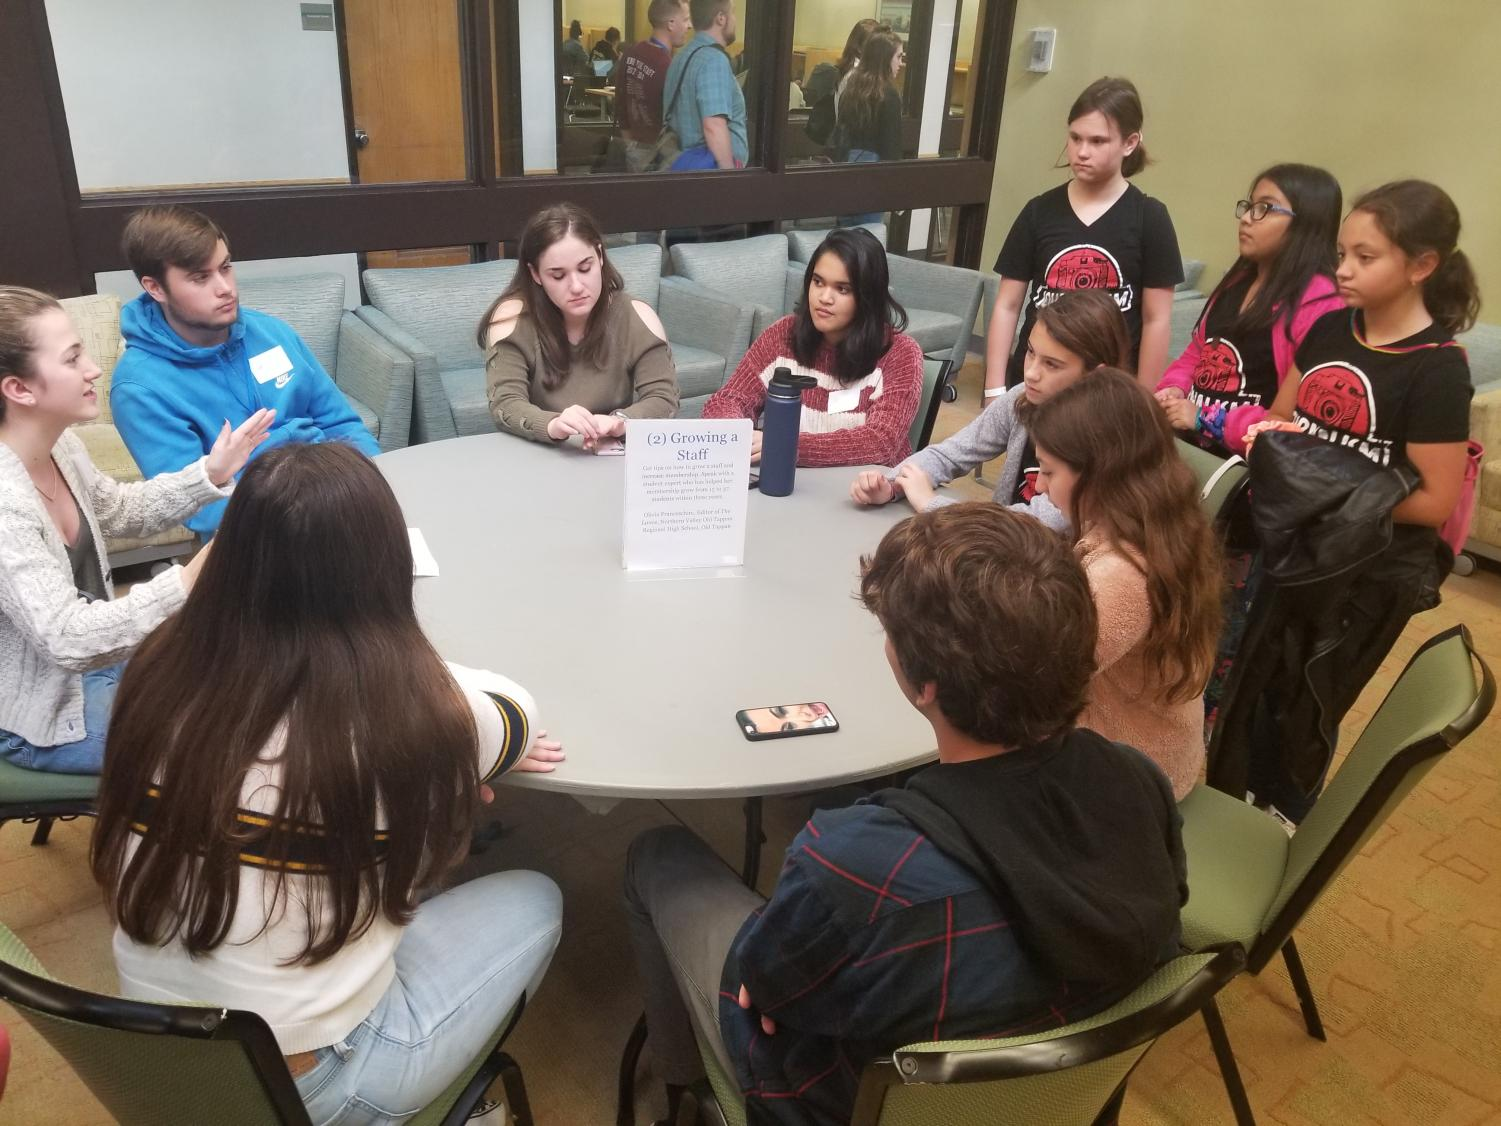 Student leaders share sound advice with peers